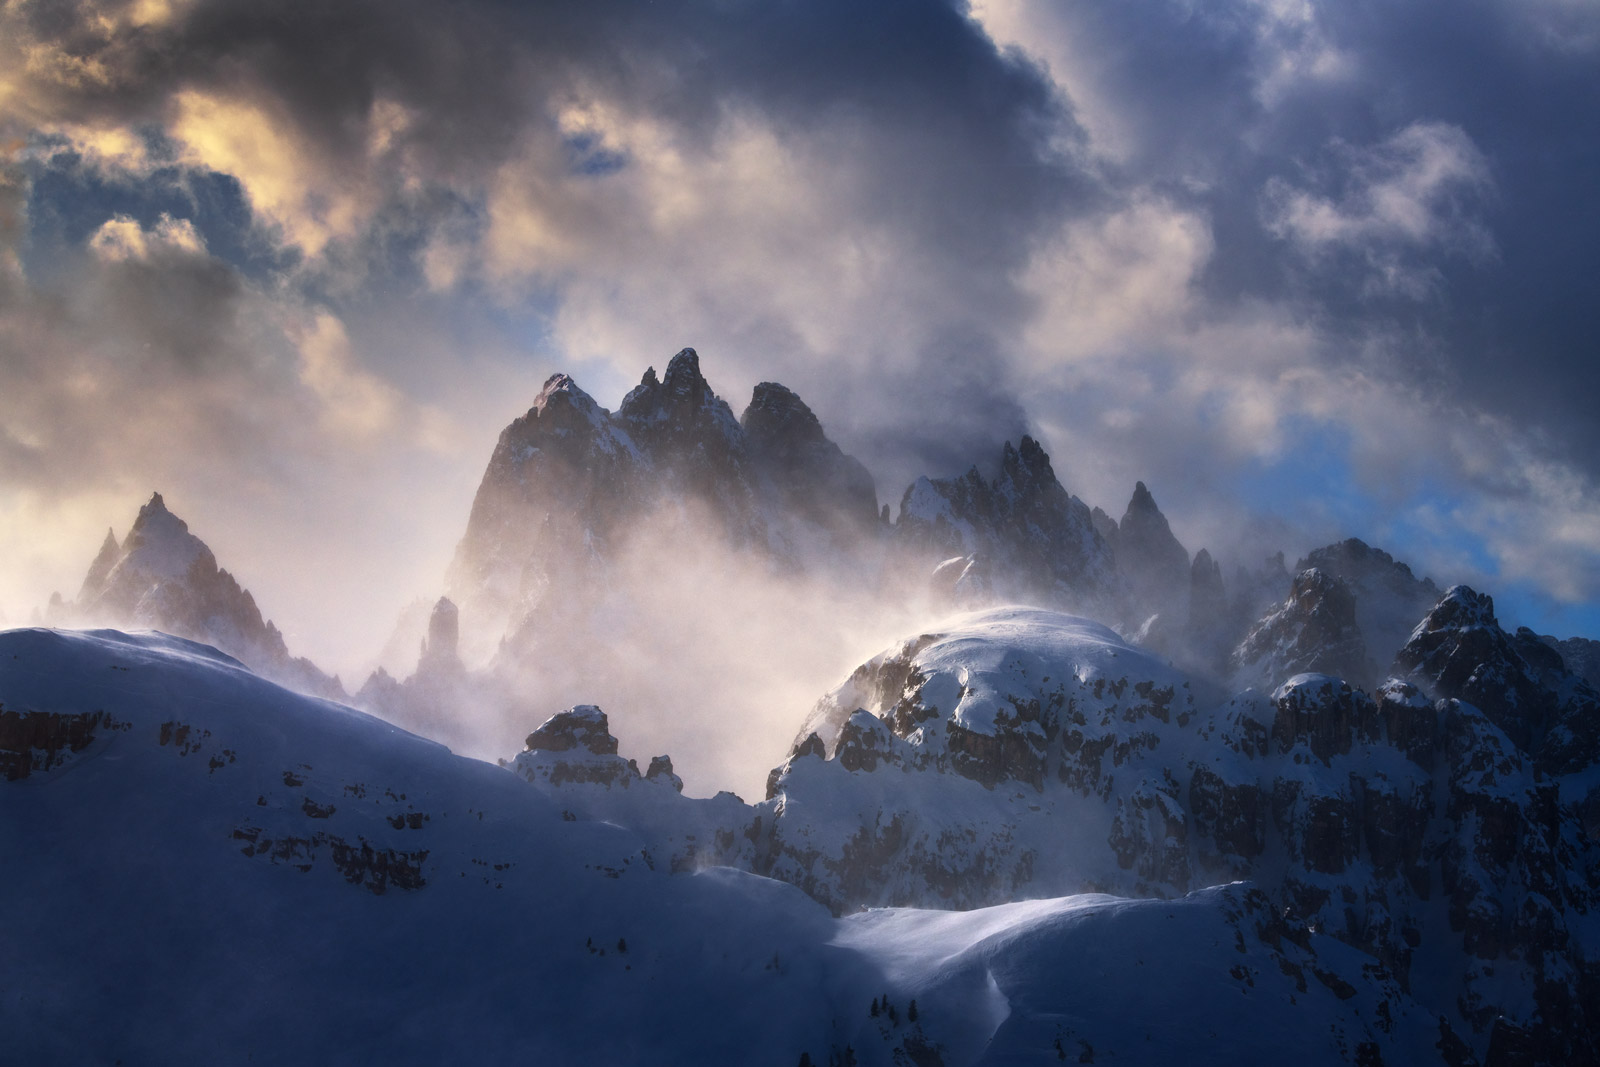 Italy, Dolomites, Mountains, Snowstorm, Winds, Snow, limited edition, photograph, photo